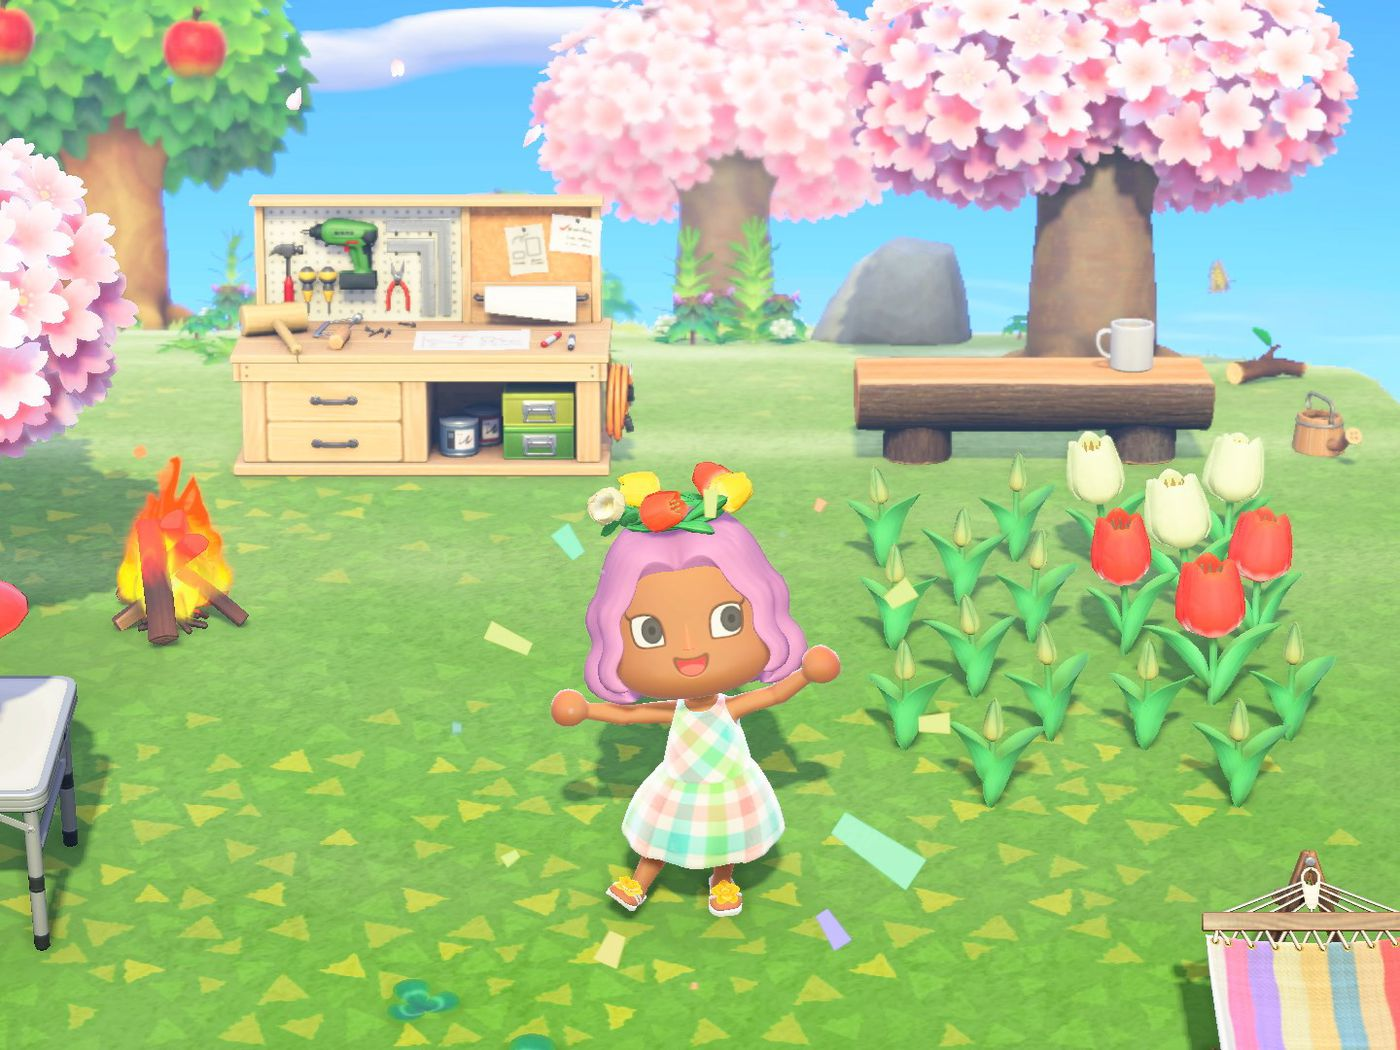 A Guide To Animal Crossing New Horizons Etiquette Or How Not To Be A Total Tool The Verge